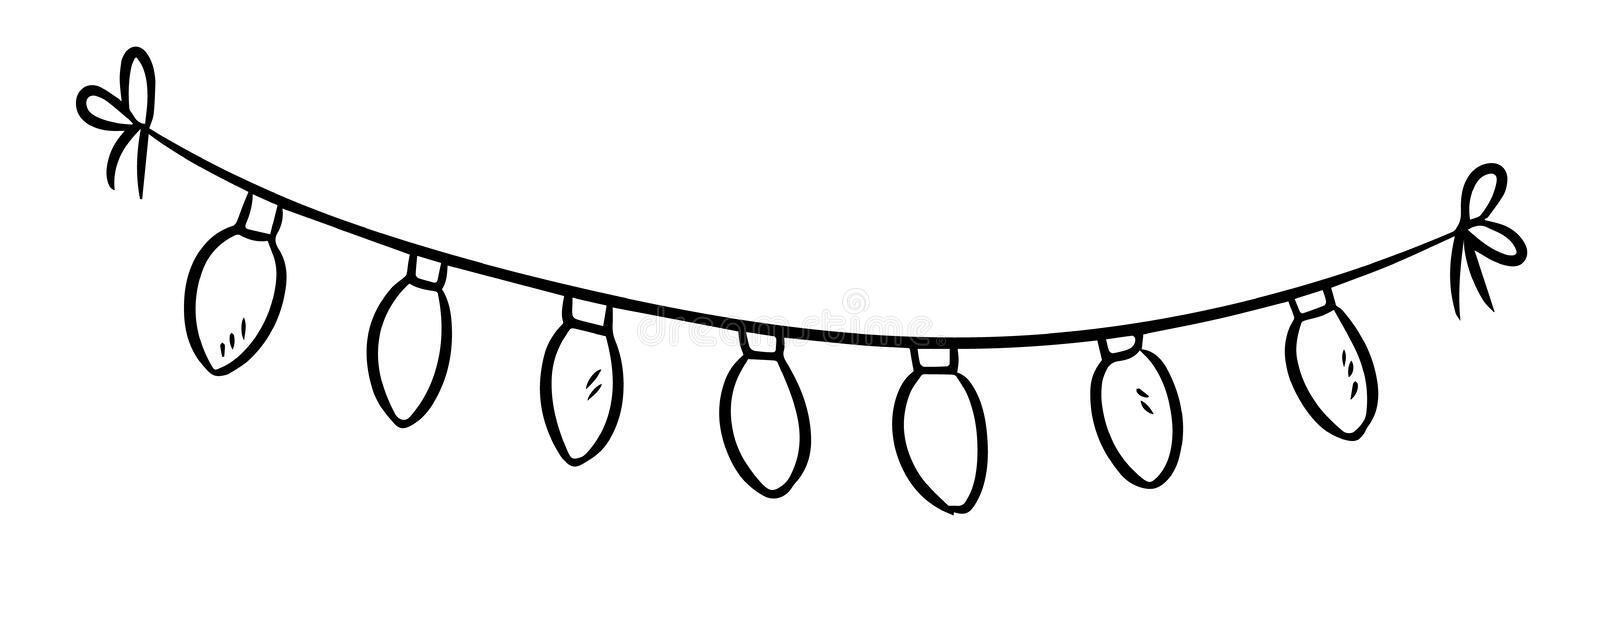 Light bulbs garland doodle. Vector isolated sketch royalty free illustration